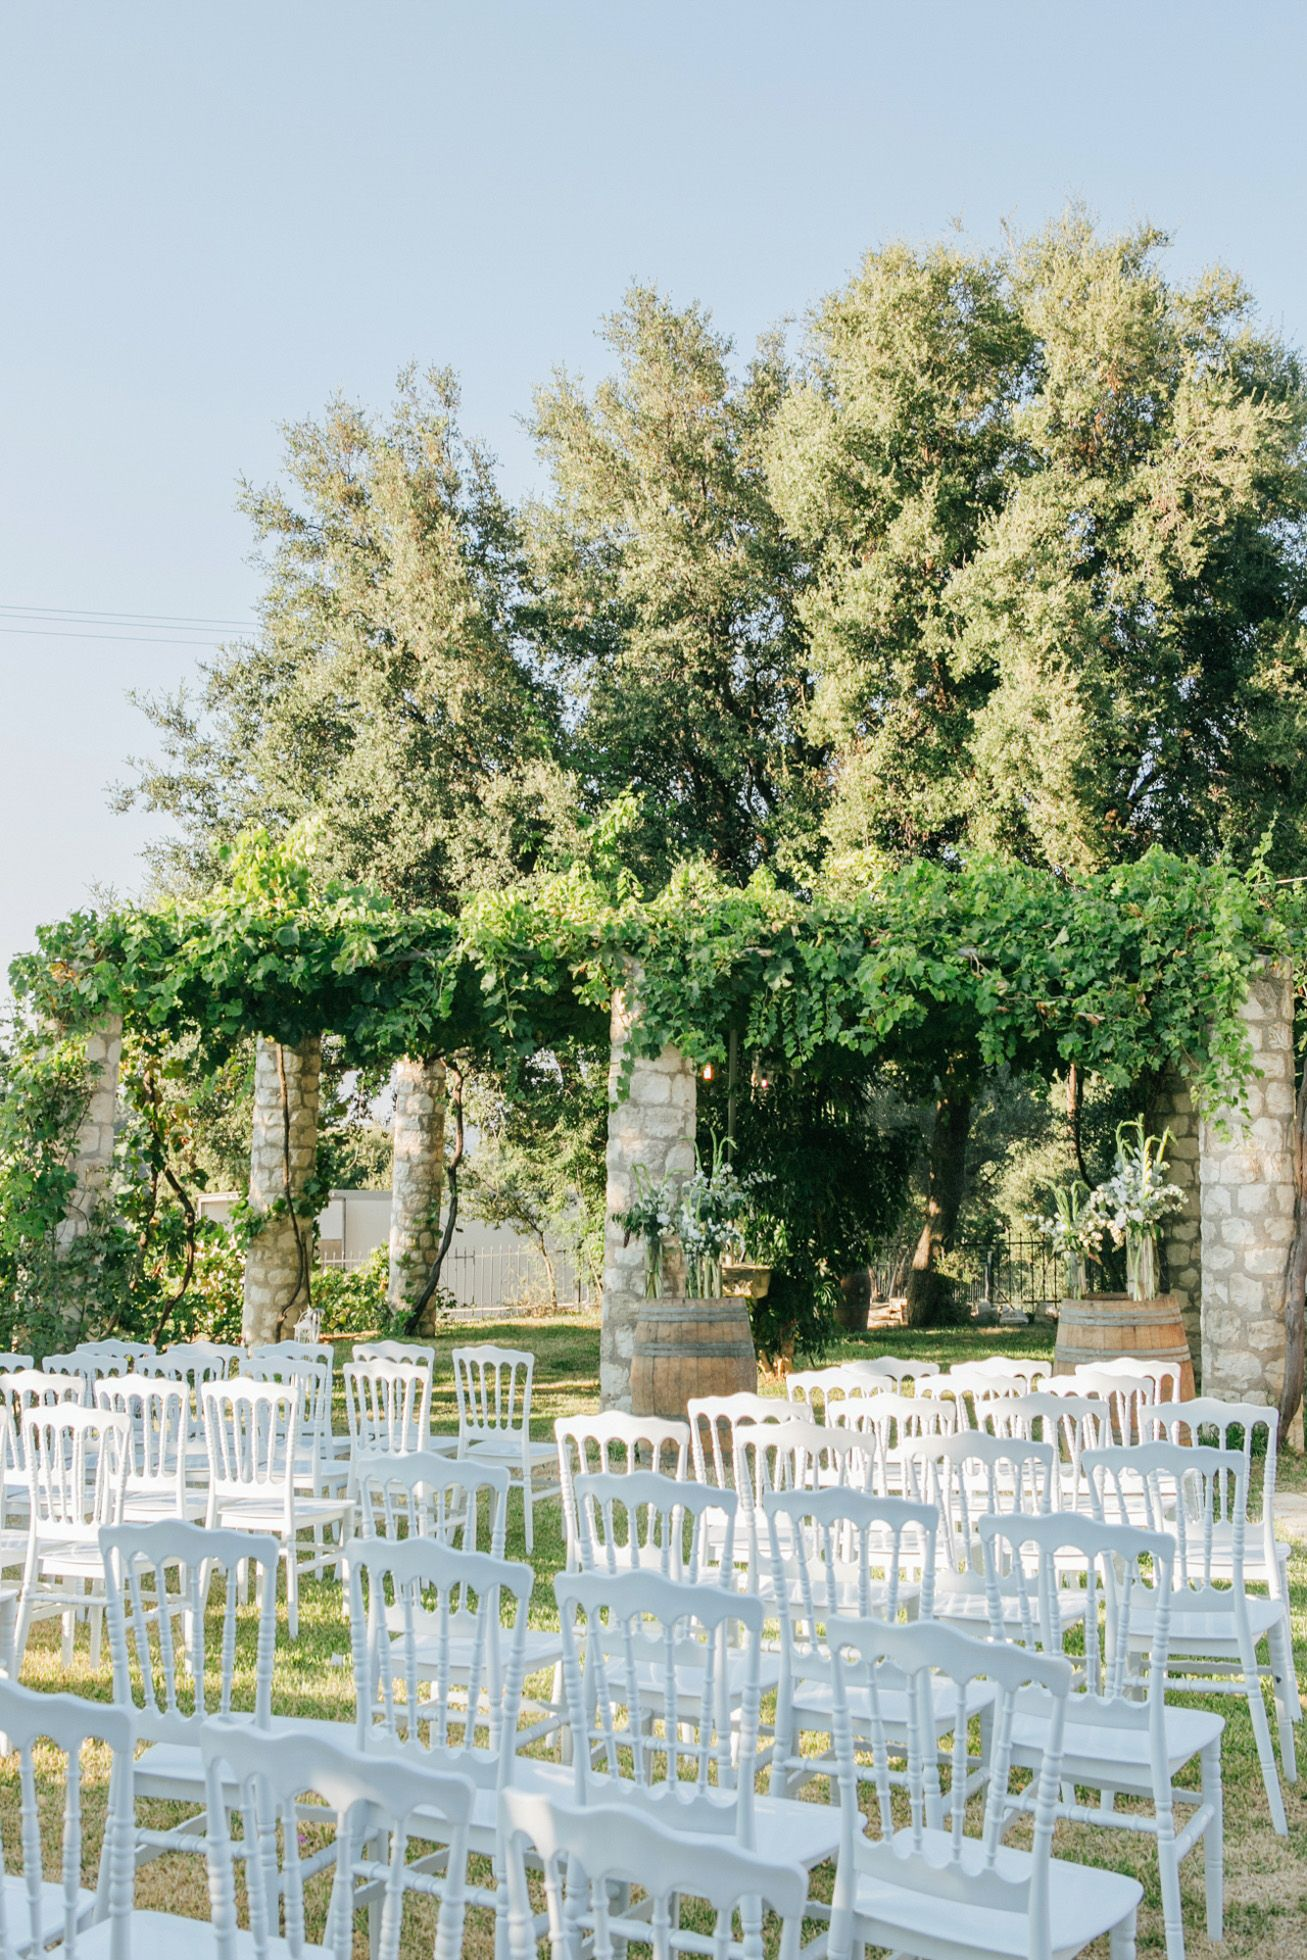 Fine Art Location Shot Of Dourakis Winery In Chania Crete By Wedding Photographer Team